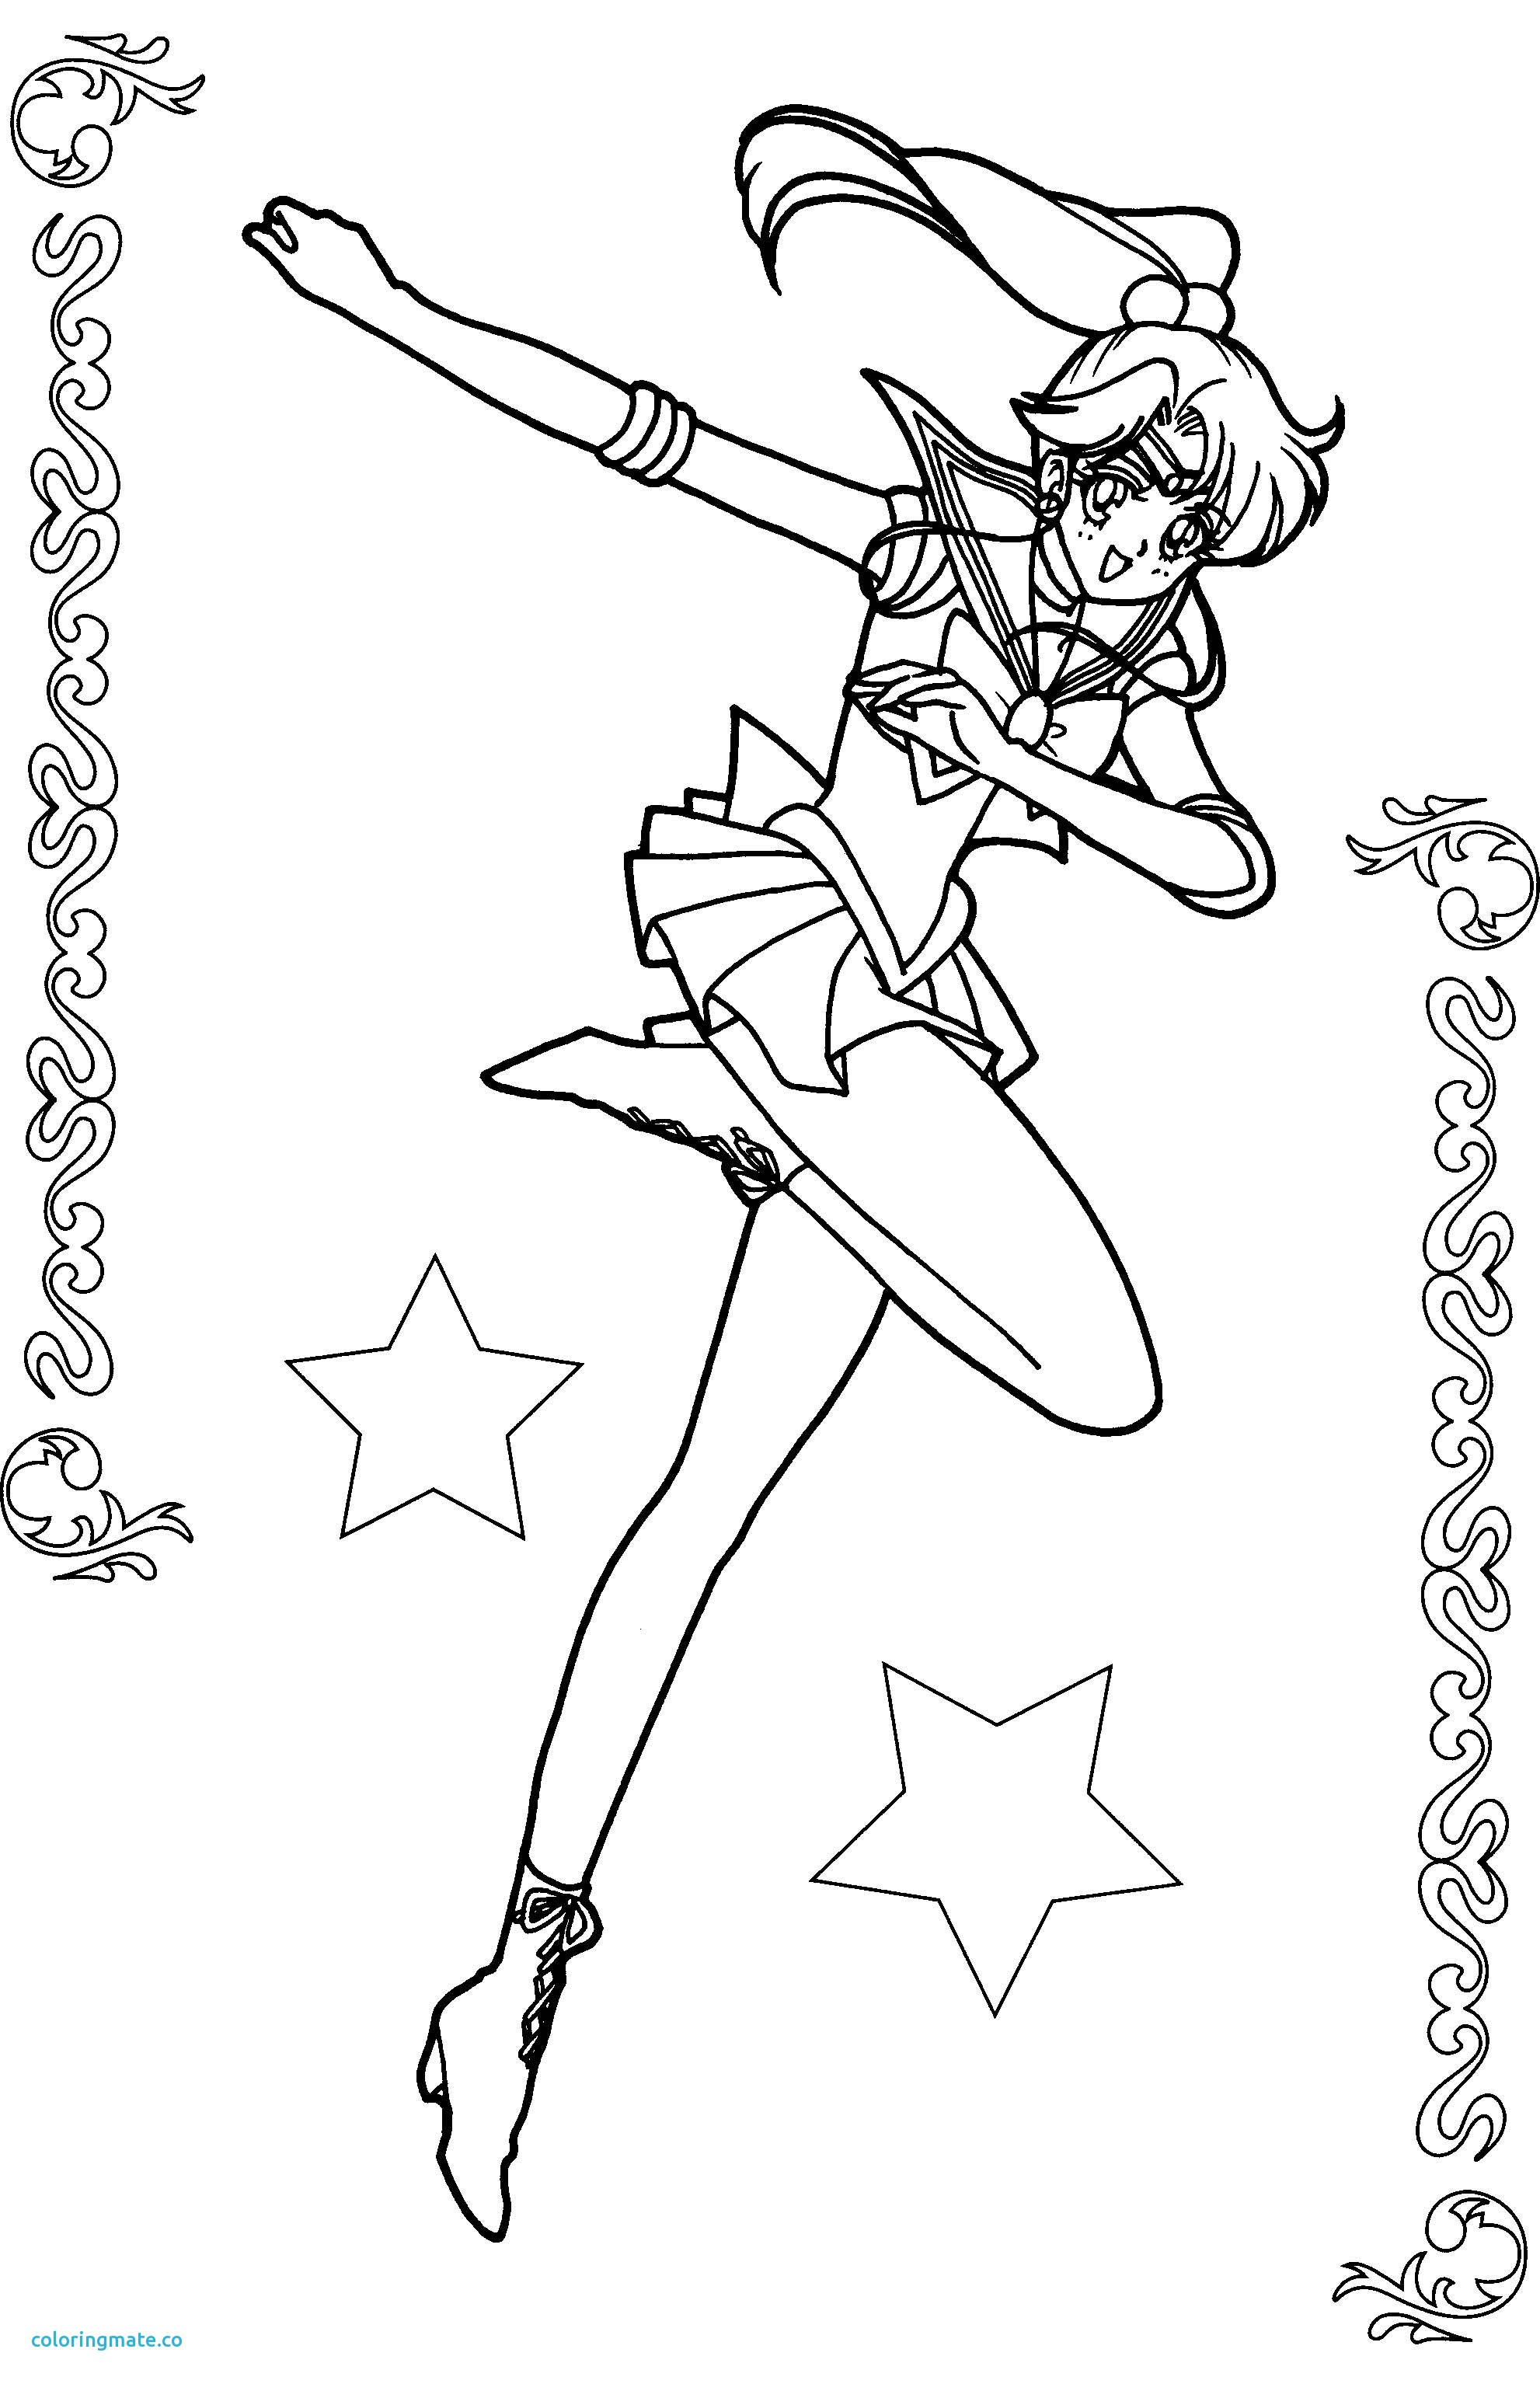 Sailor Moon Coloring Pages Jupiter Coloring Pages Jupiter Coloring Page Luxury Sailor Moon